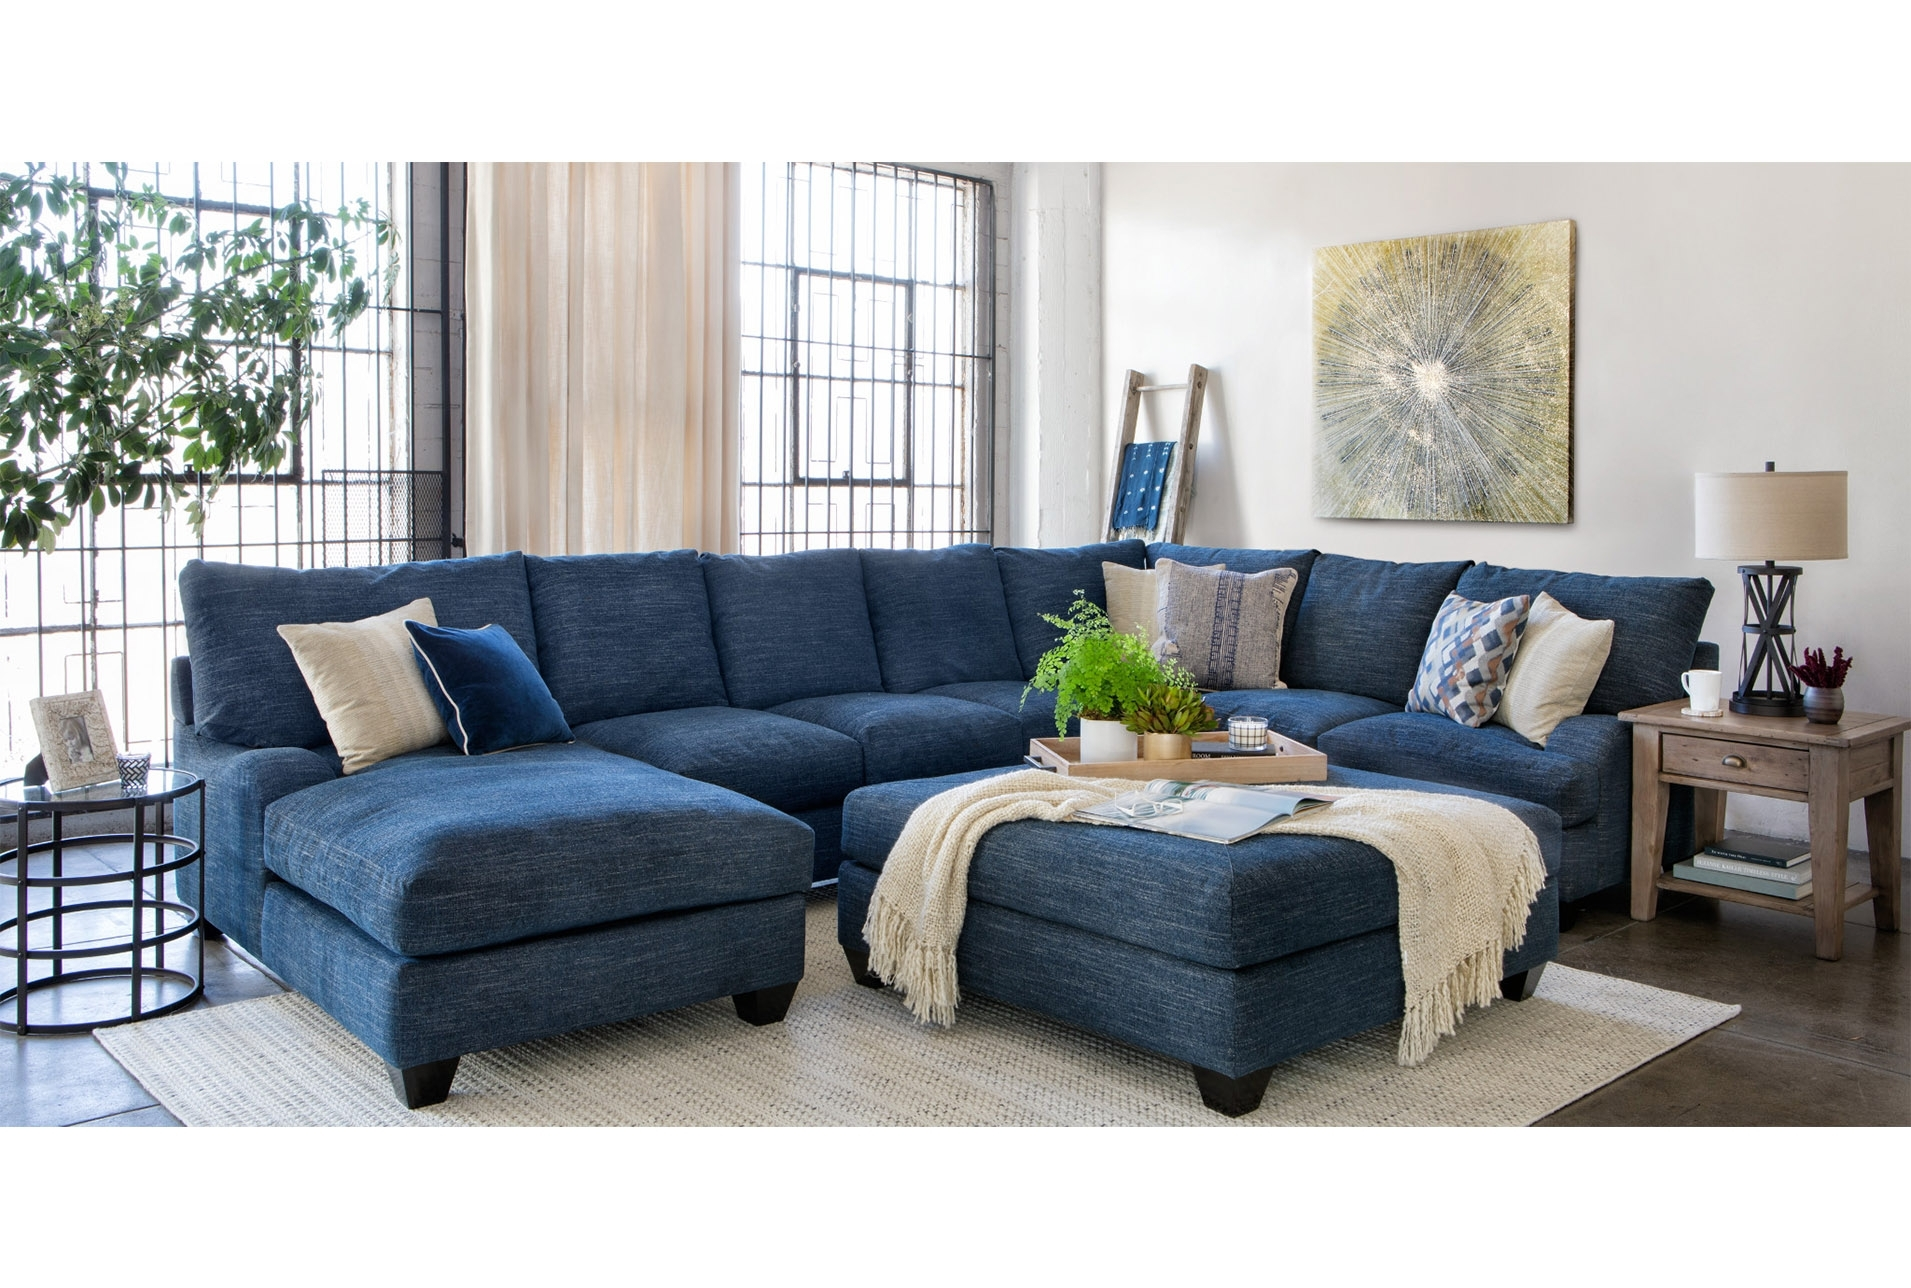 Sierra Down 3 Piece Sectional W/laf Chaise | Products | Pinterest With Regard To Sierra Down 3 Piece Sectionals With Laf Chaise (View 3 of 25)